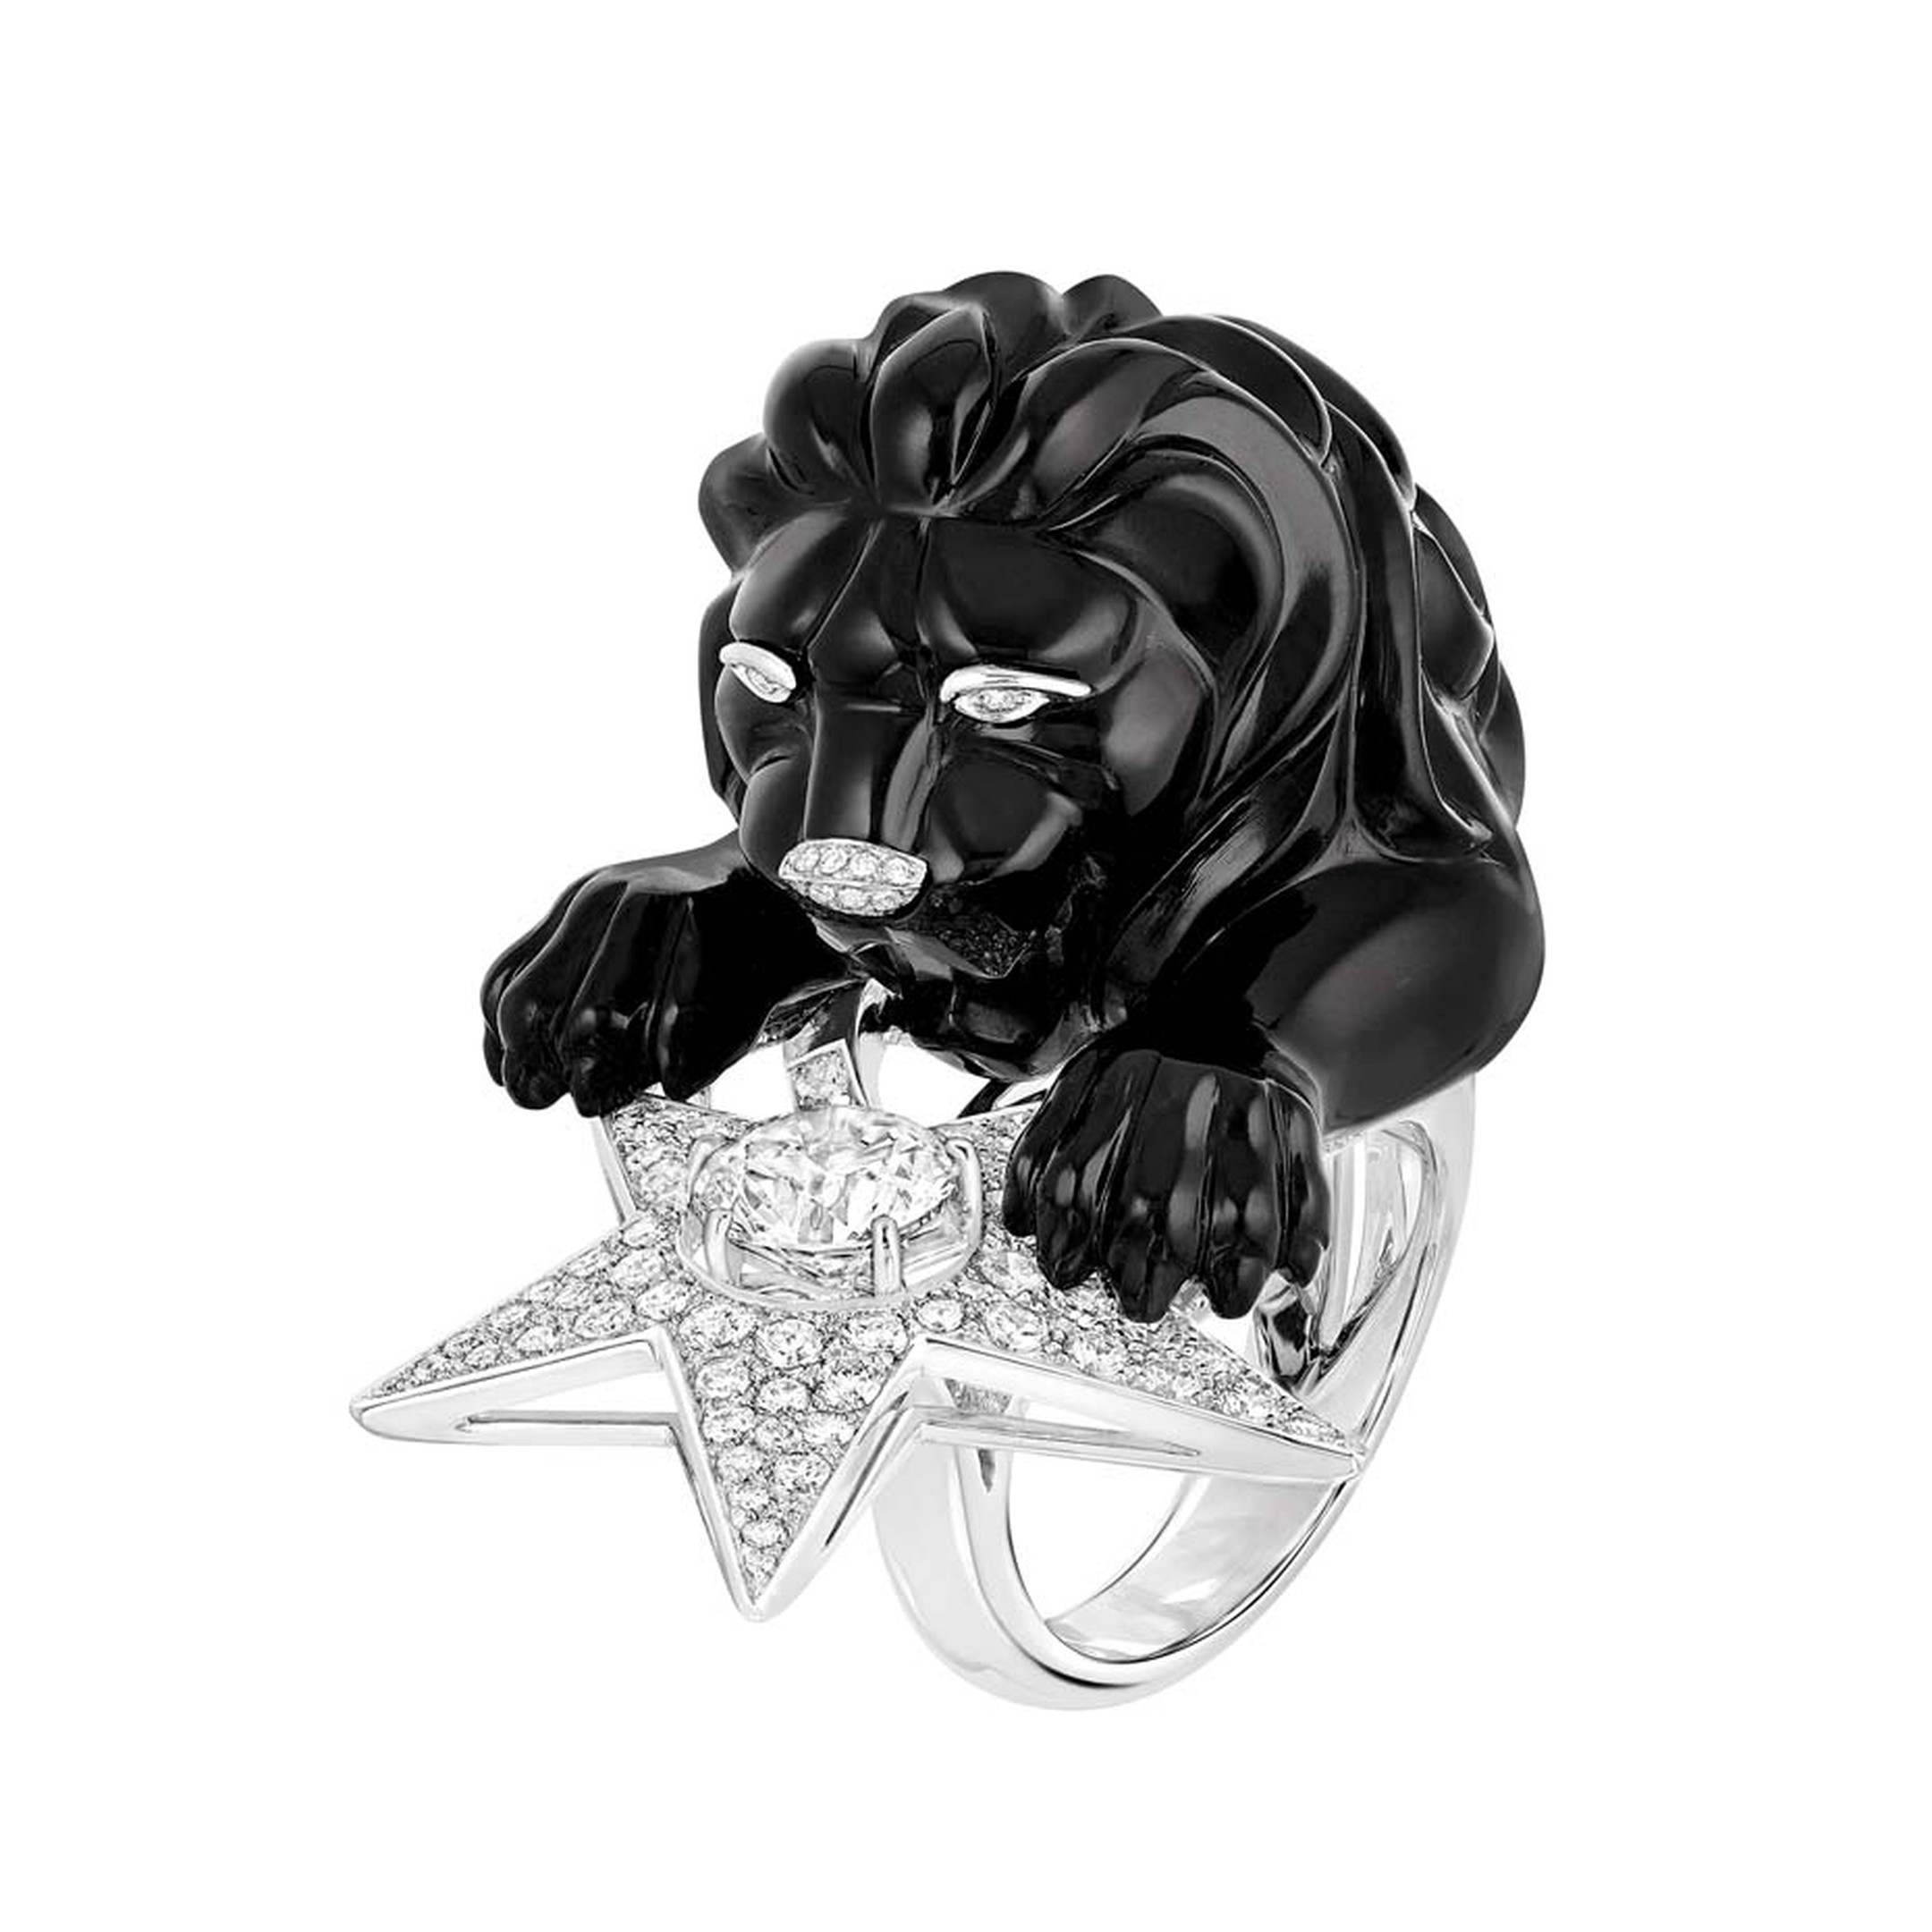 The second Chanel Constellation du Lion ring from the new Les Intemporels high jewellery collection features the same regal lion guarding a sparkling star, but this time the lion is carved out of onyx.